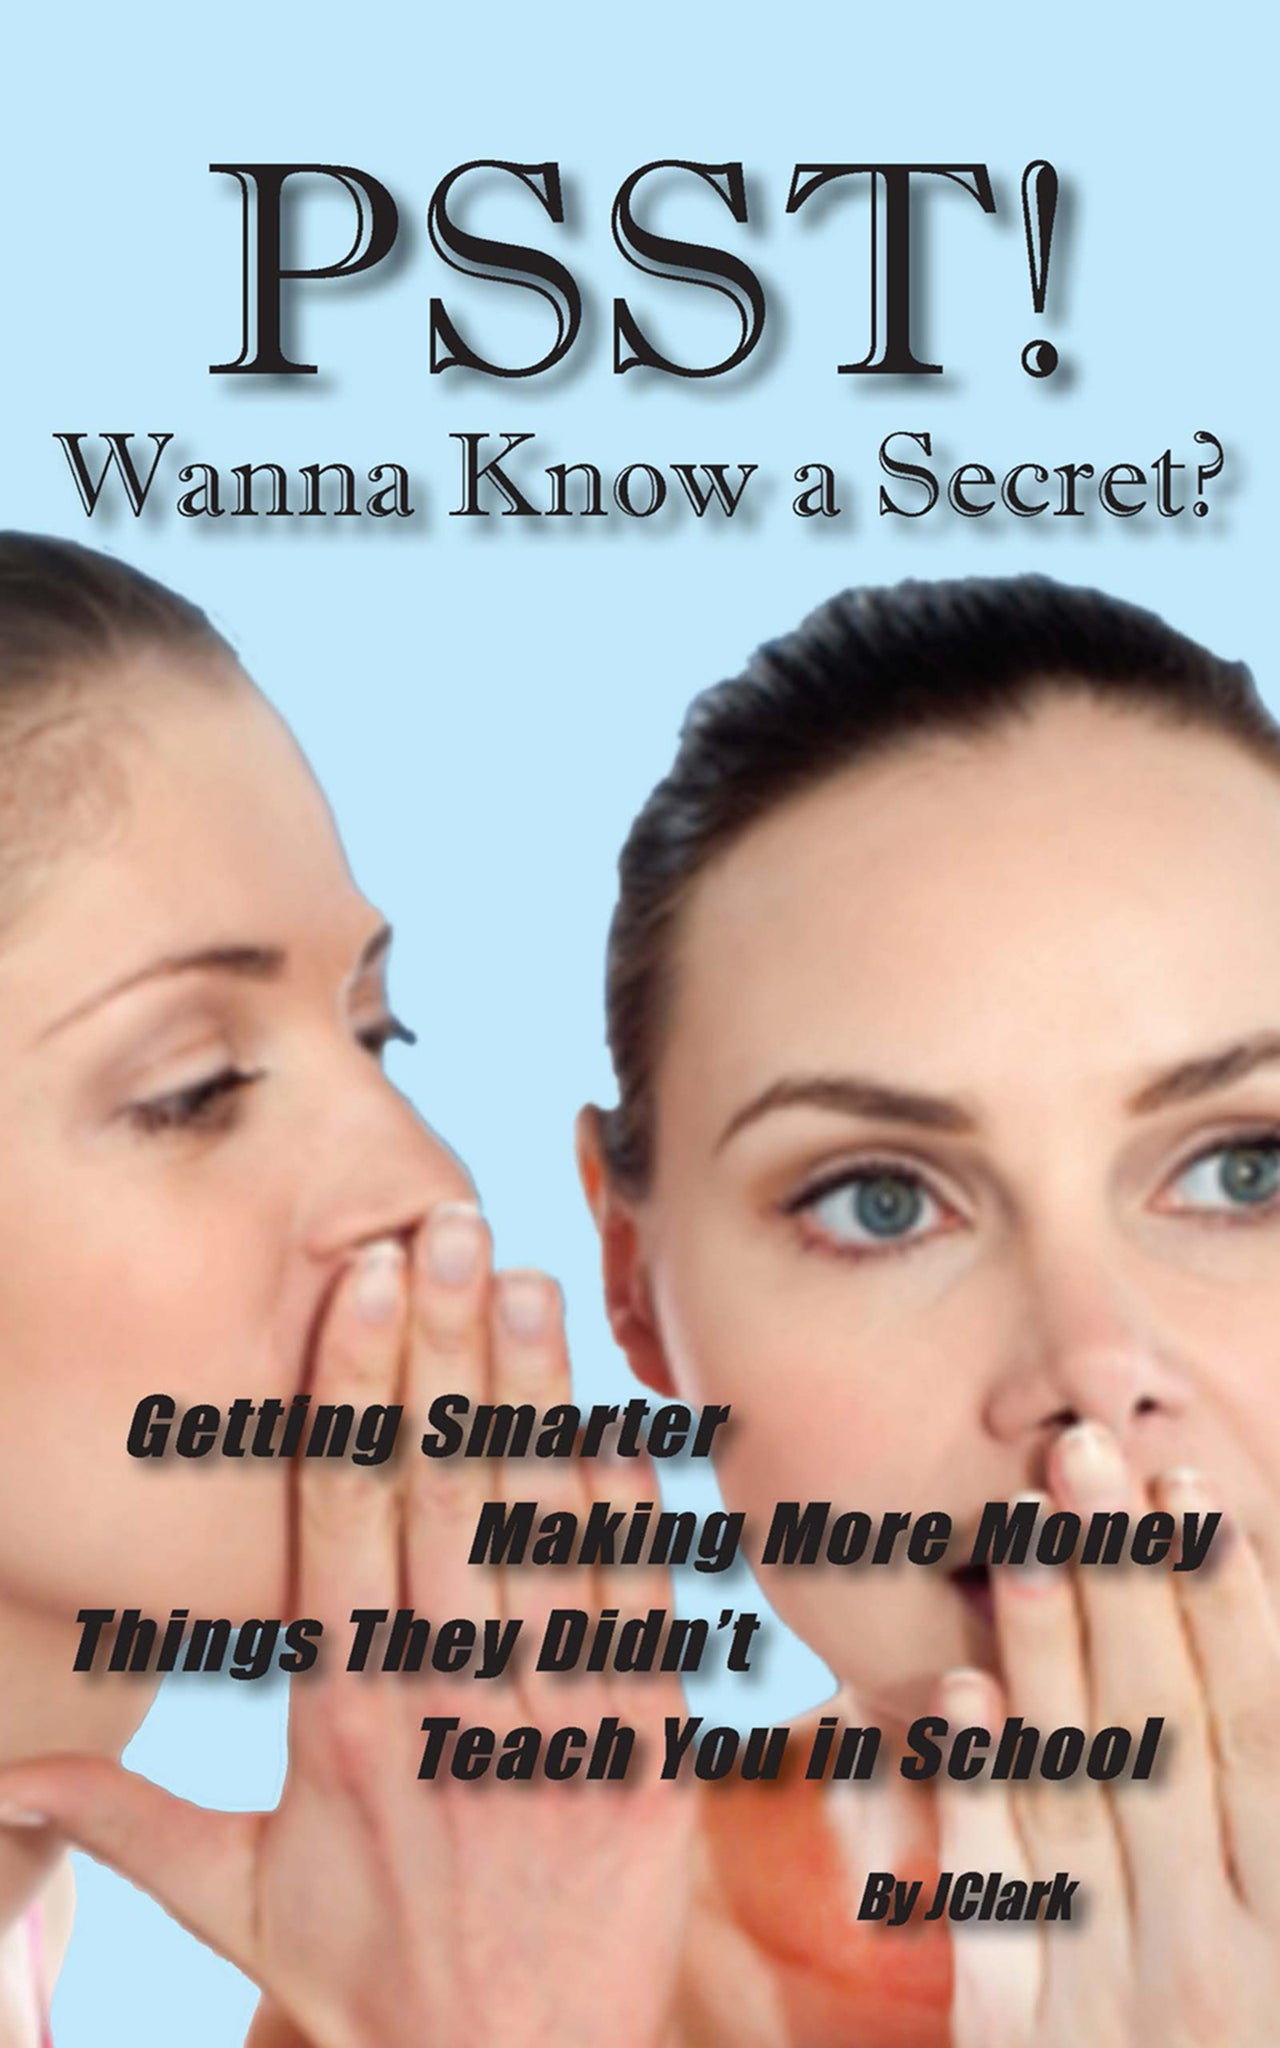 PSST! Wanna Know a Secret? by J Clark